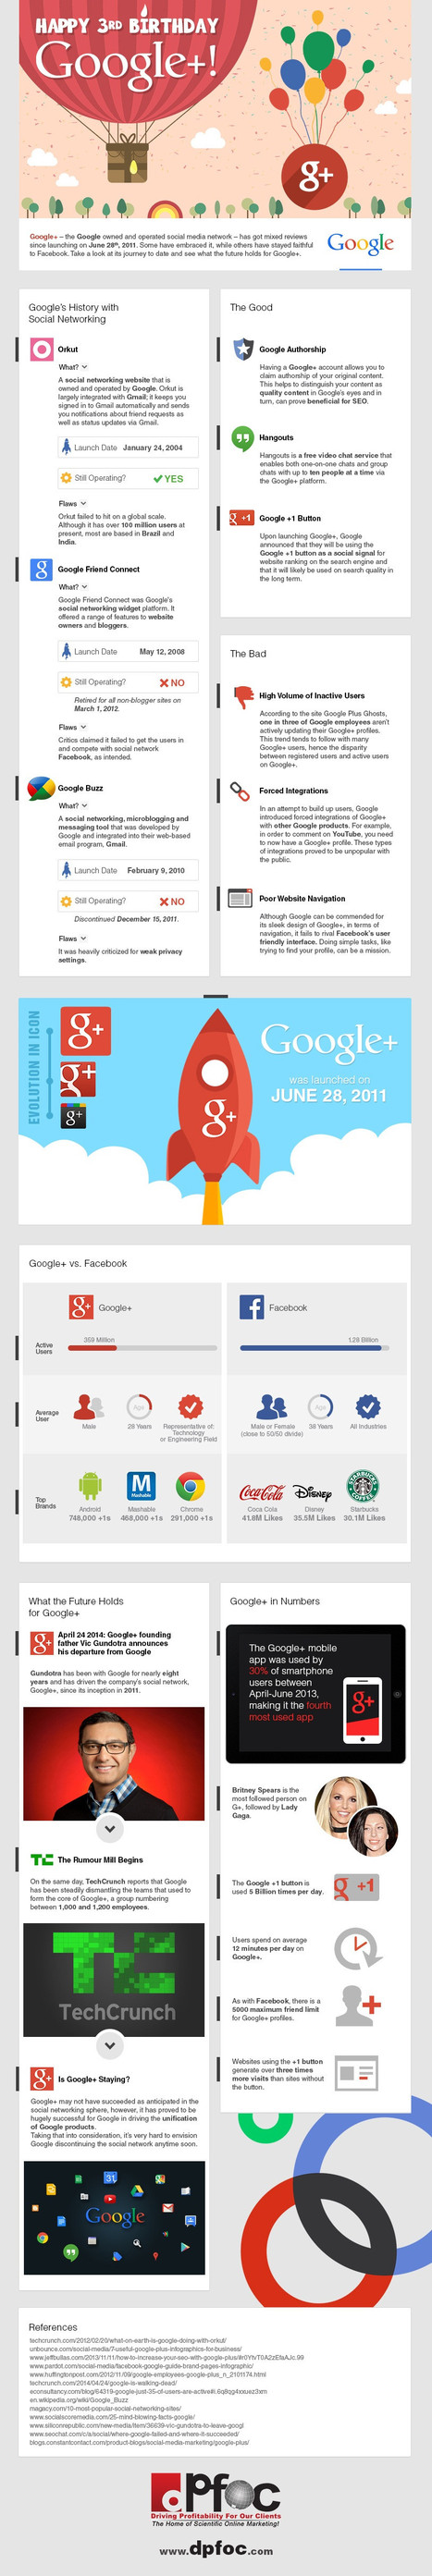 INFOGRAPHIC: The Timeline Of Google+ | Social Media by BeSocialOnline | Scoop.it